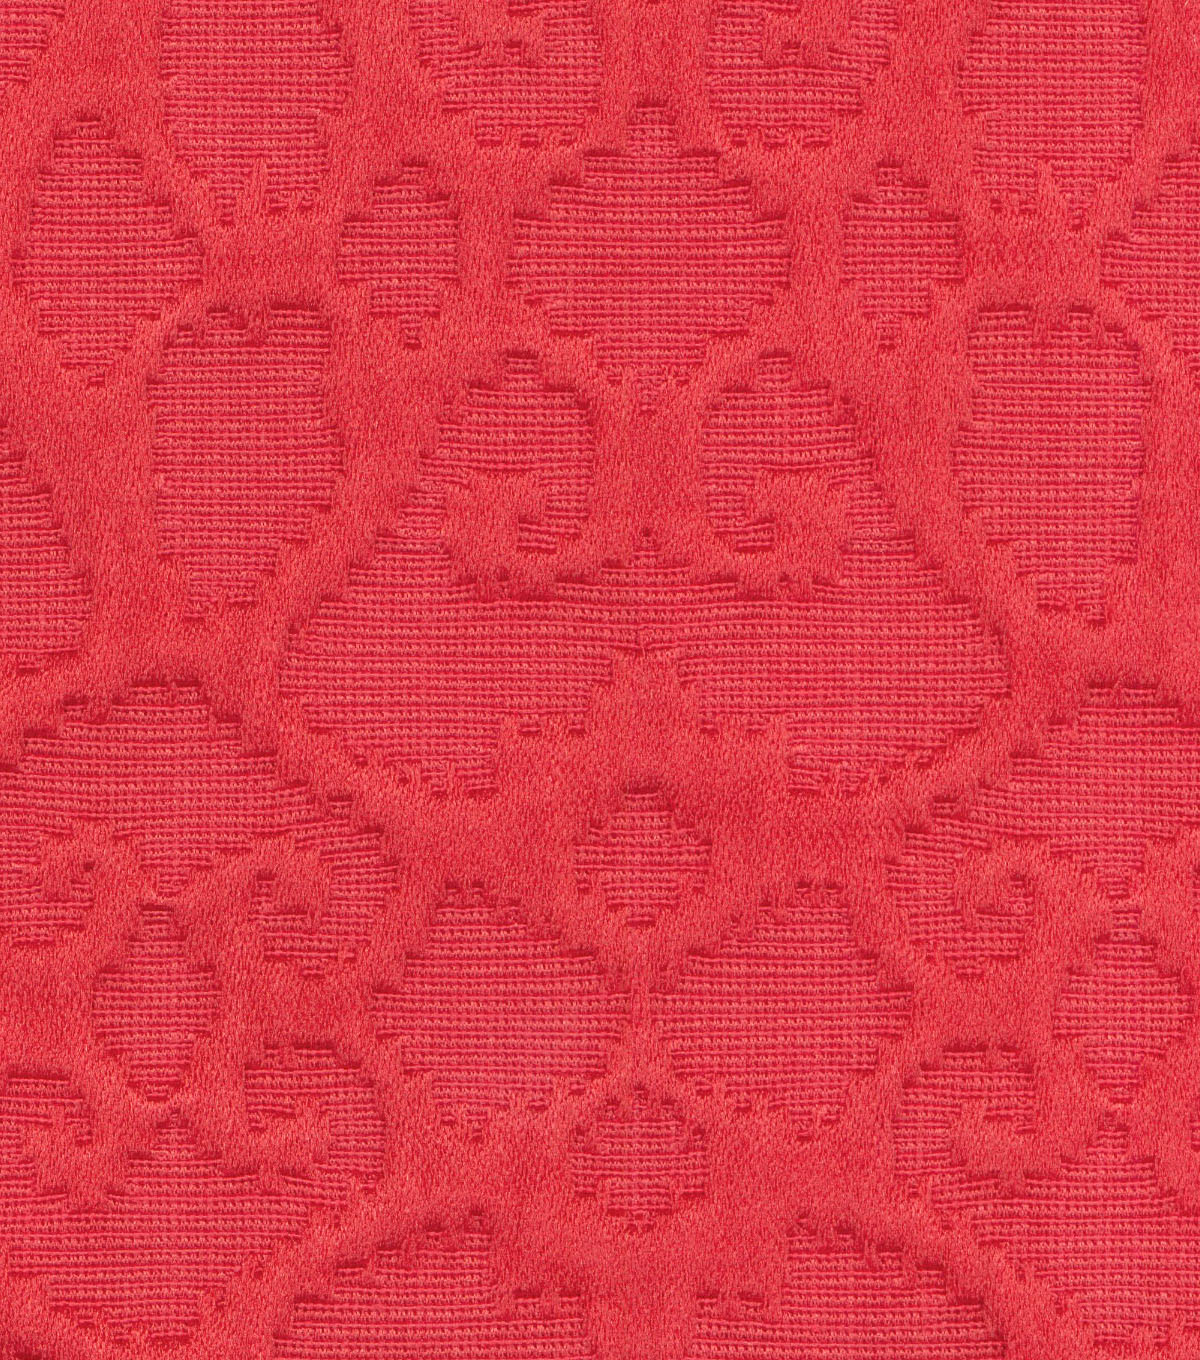 Dena Designs Upholstery Fabric 13x13\u0022 Swatch-Loophole Watermelon